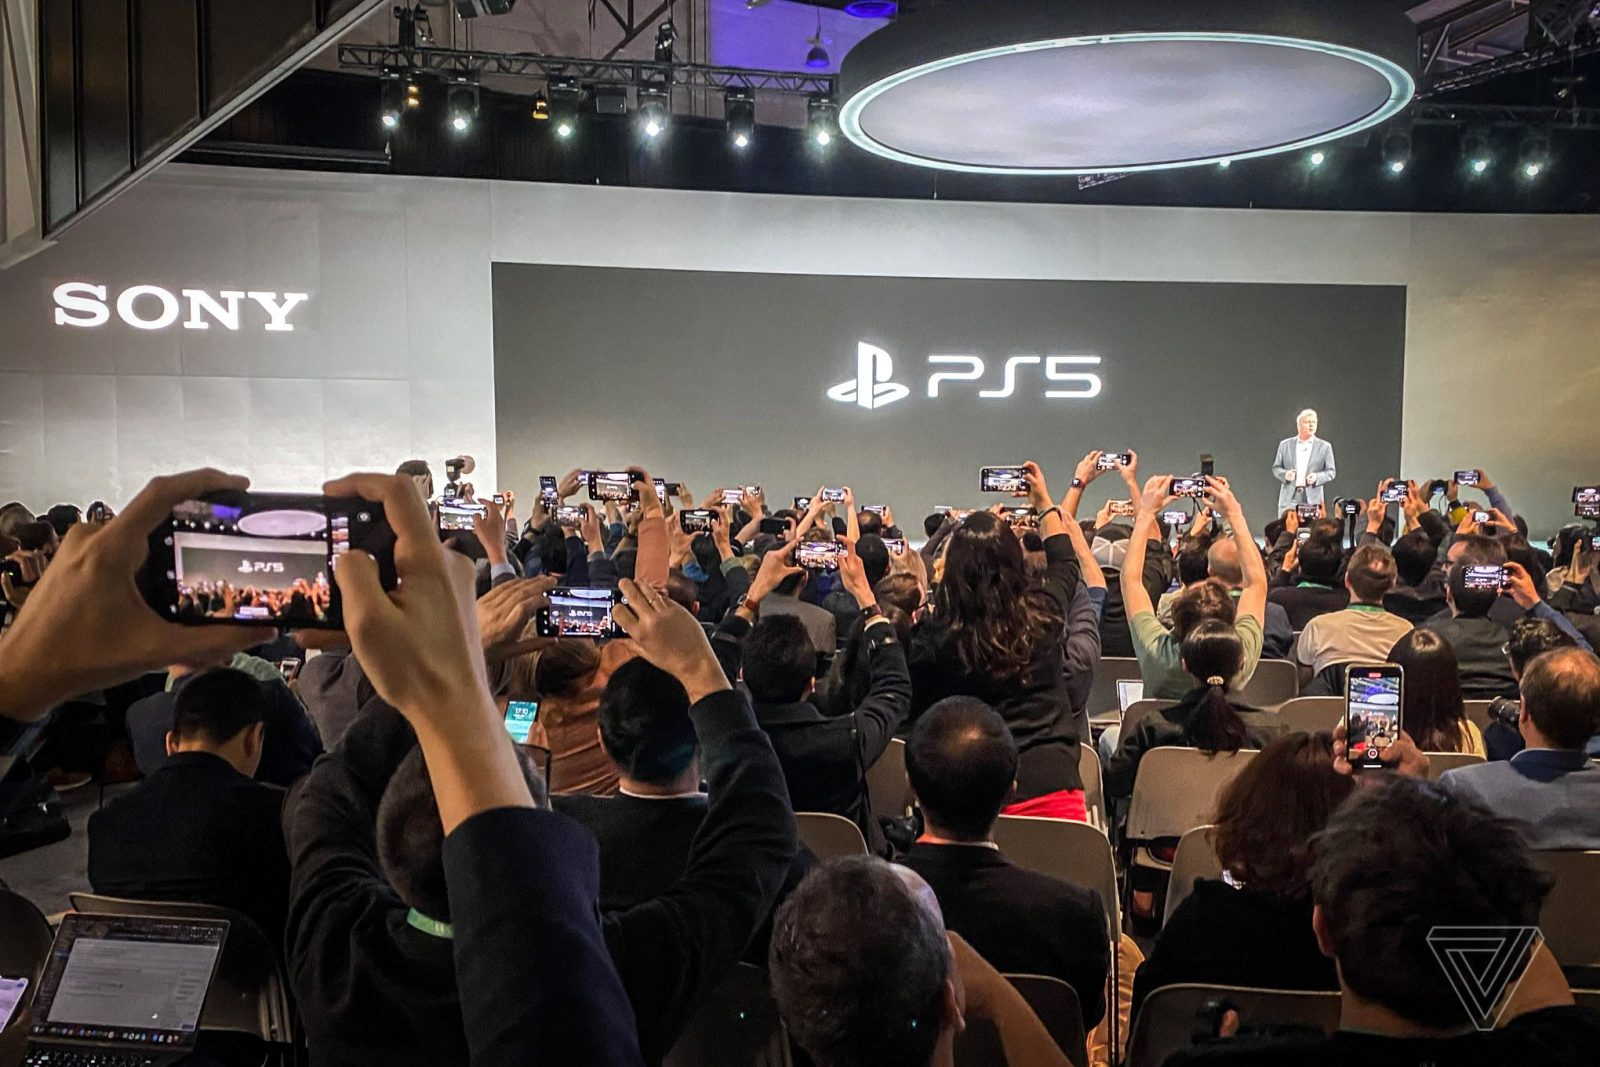 Sony is consistenly working on ways to reduce the pricing of their new console PlayStation 5!